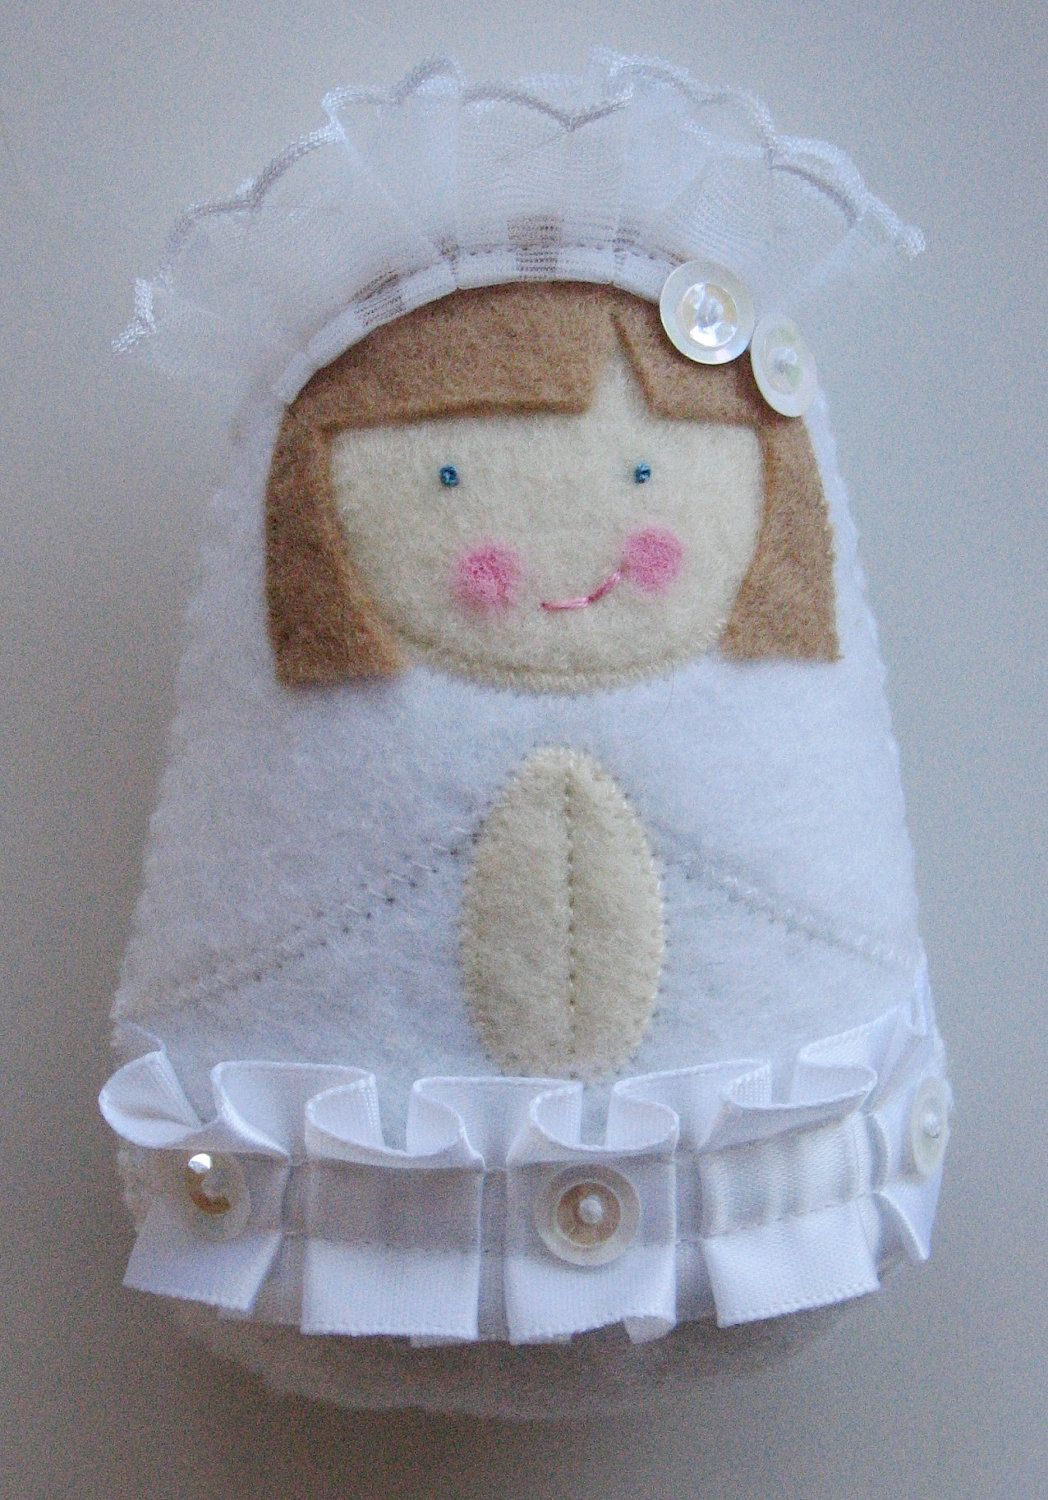 First Communion Felt Softie with personalized colors from SaintlySilver on Etsy. Love the other saints and popes she makes too!